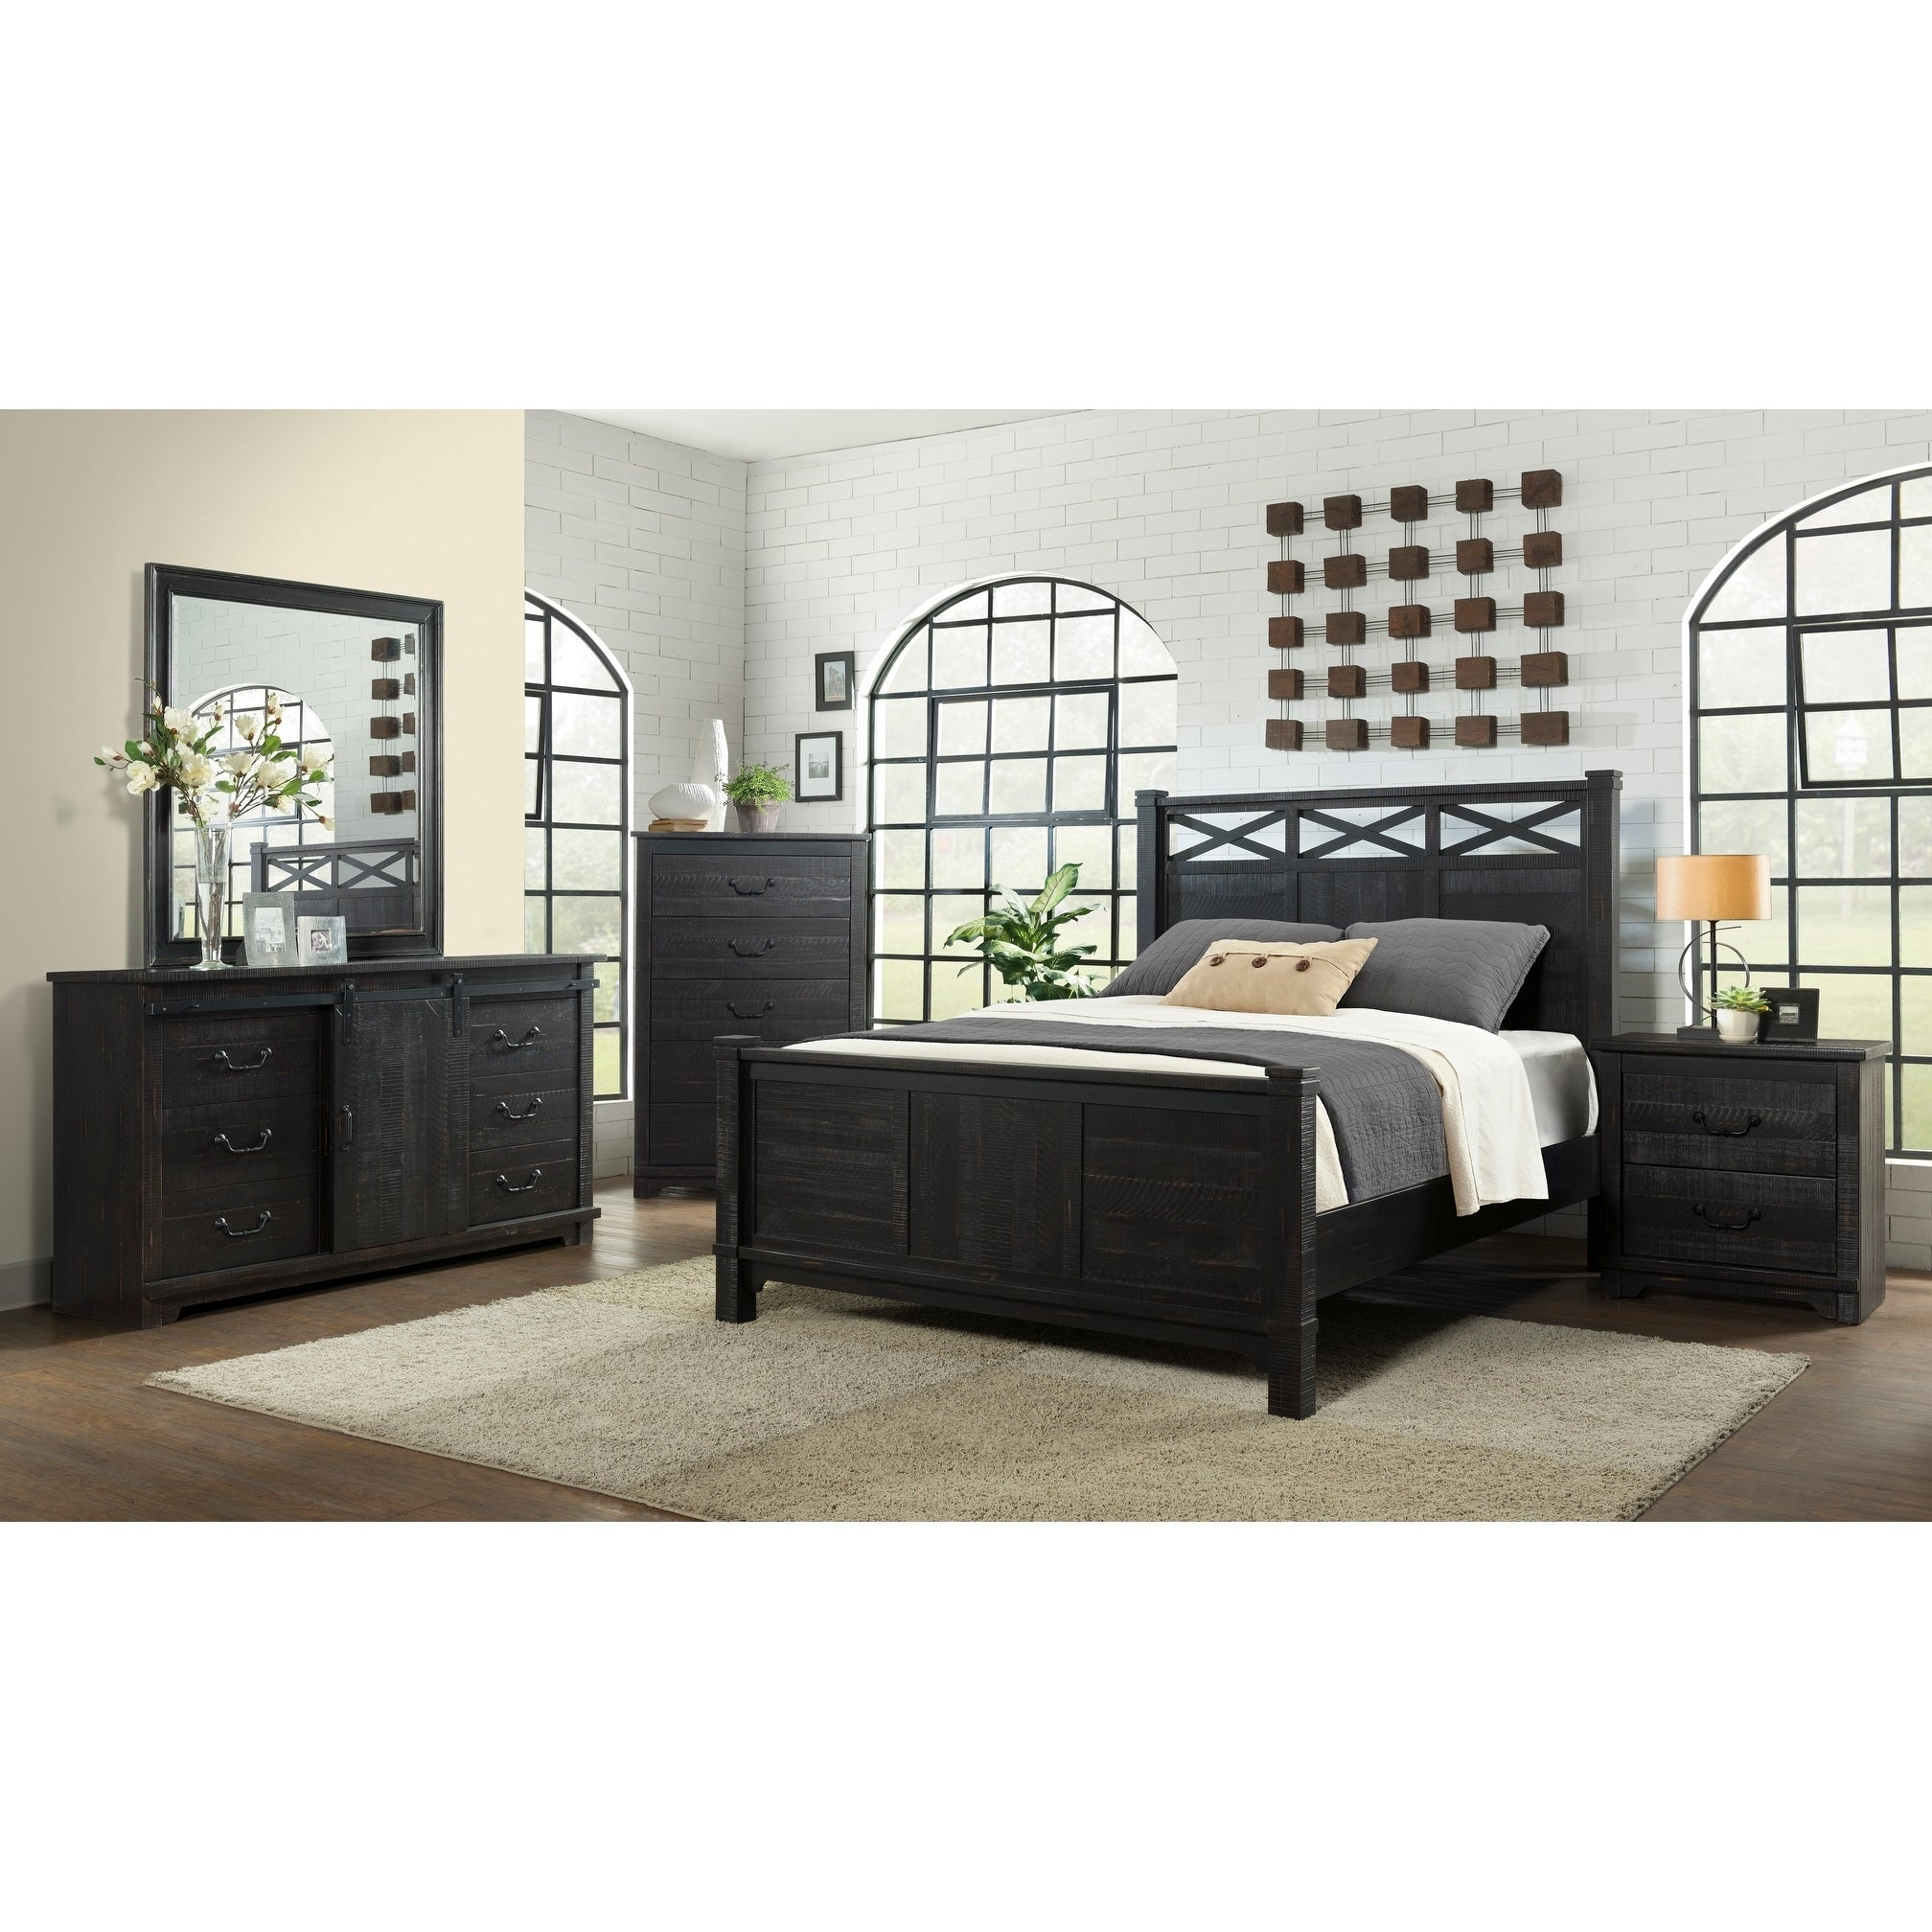 Shop Black Friday Deals On Coastal Farmhouse Solid Wood Armoire With Sliding Barn Door Antique Black Overstock 22277341